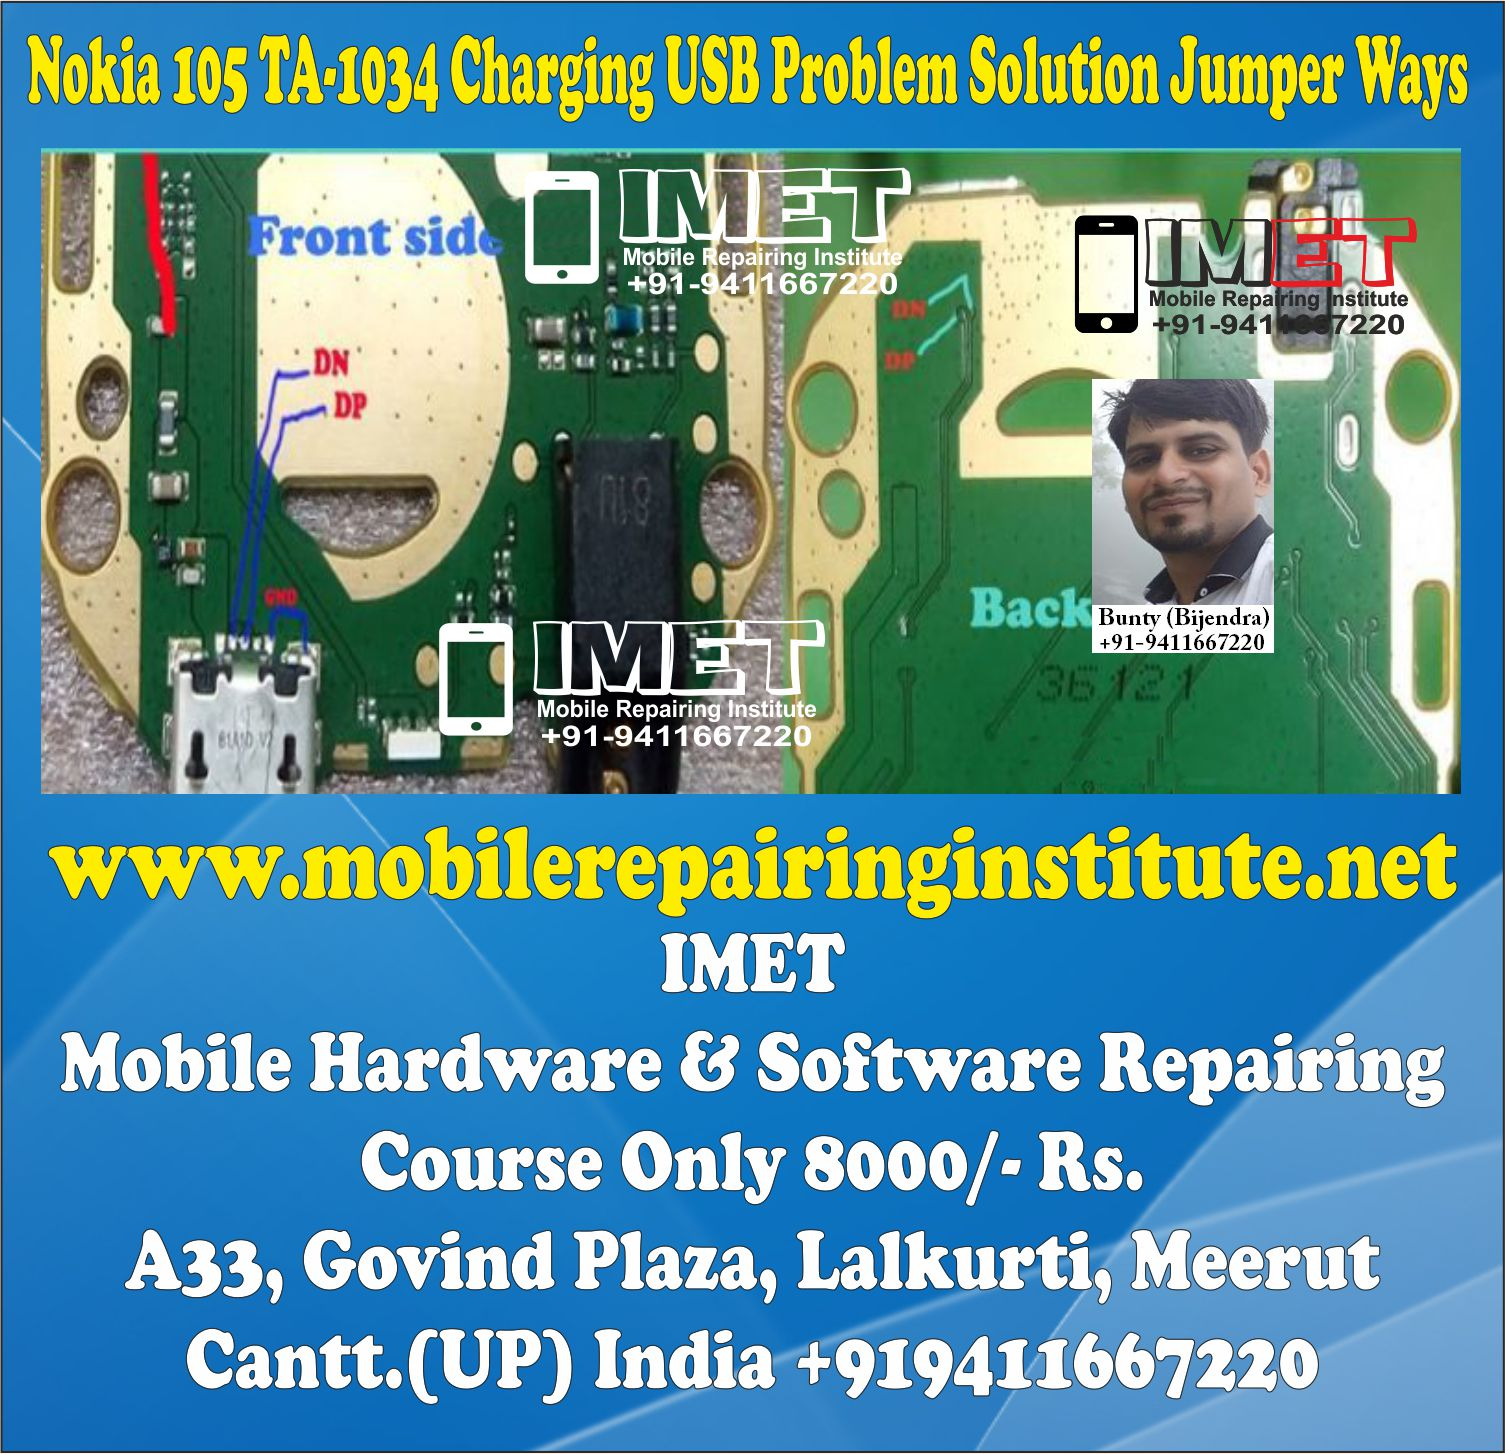 Nokia 105 TA-1034 Charging USB Problem Solution Jumper Ways